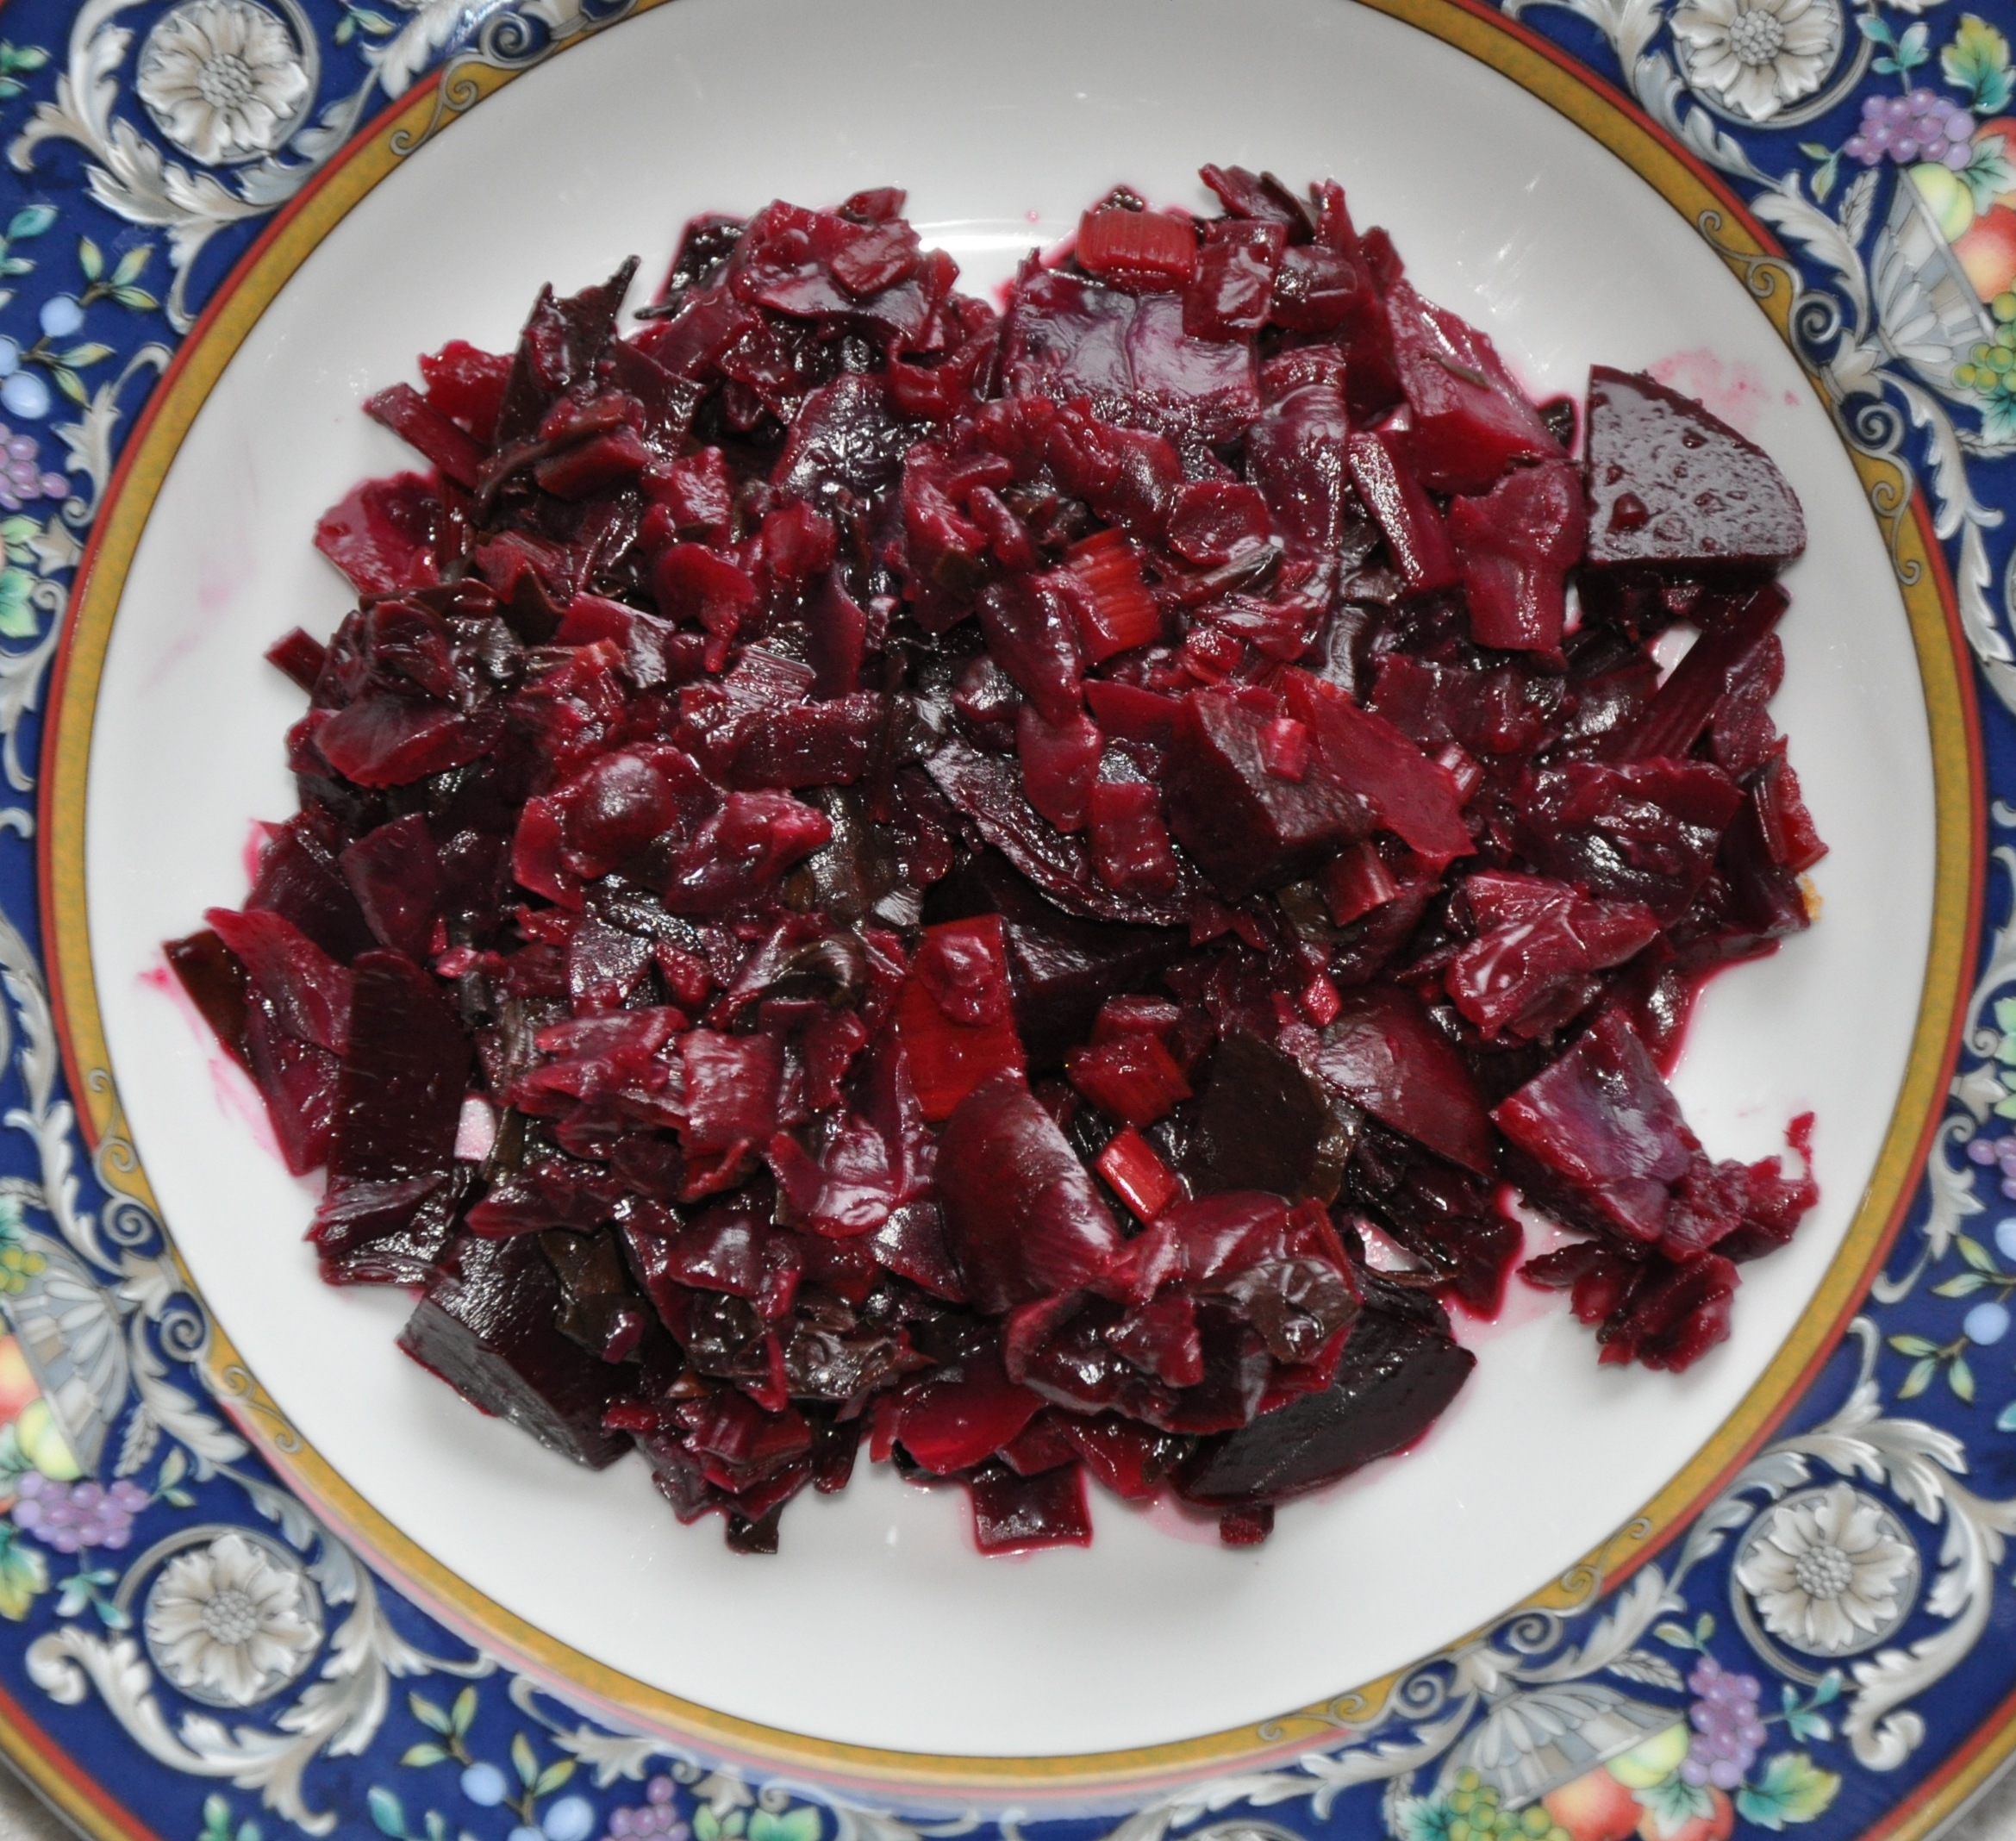 Bright Winter Side (Sauteed Beet Greens, Red Chard and Red Cabbage with Roasted Beets)